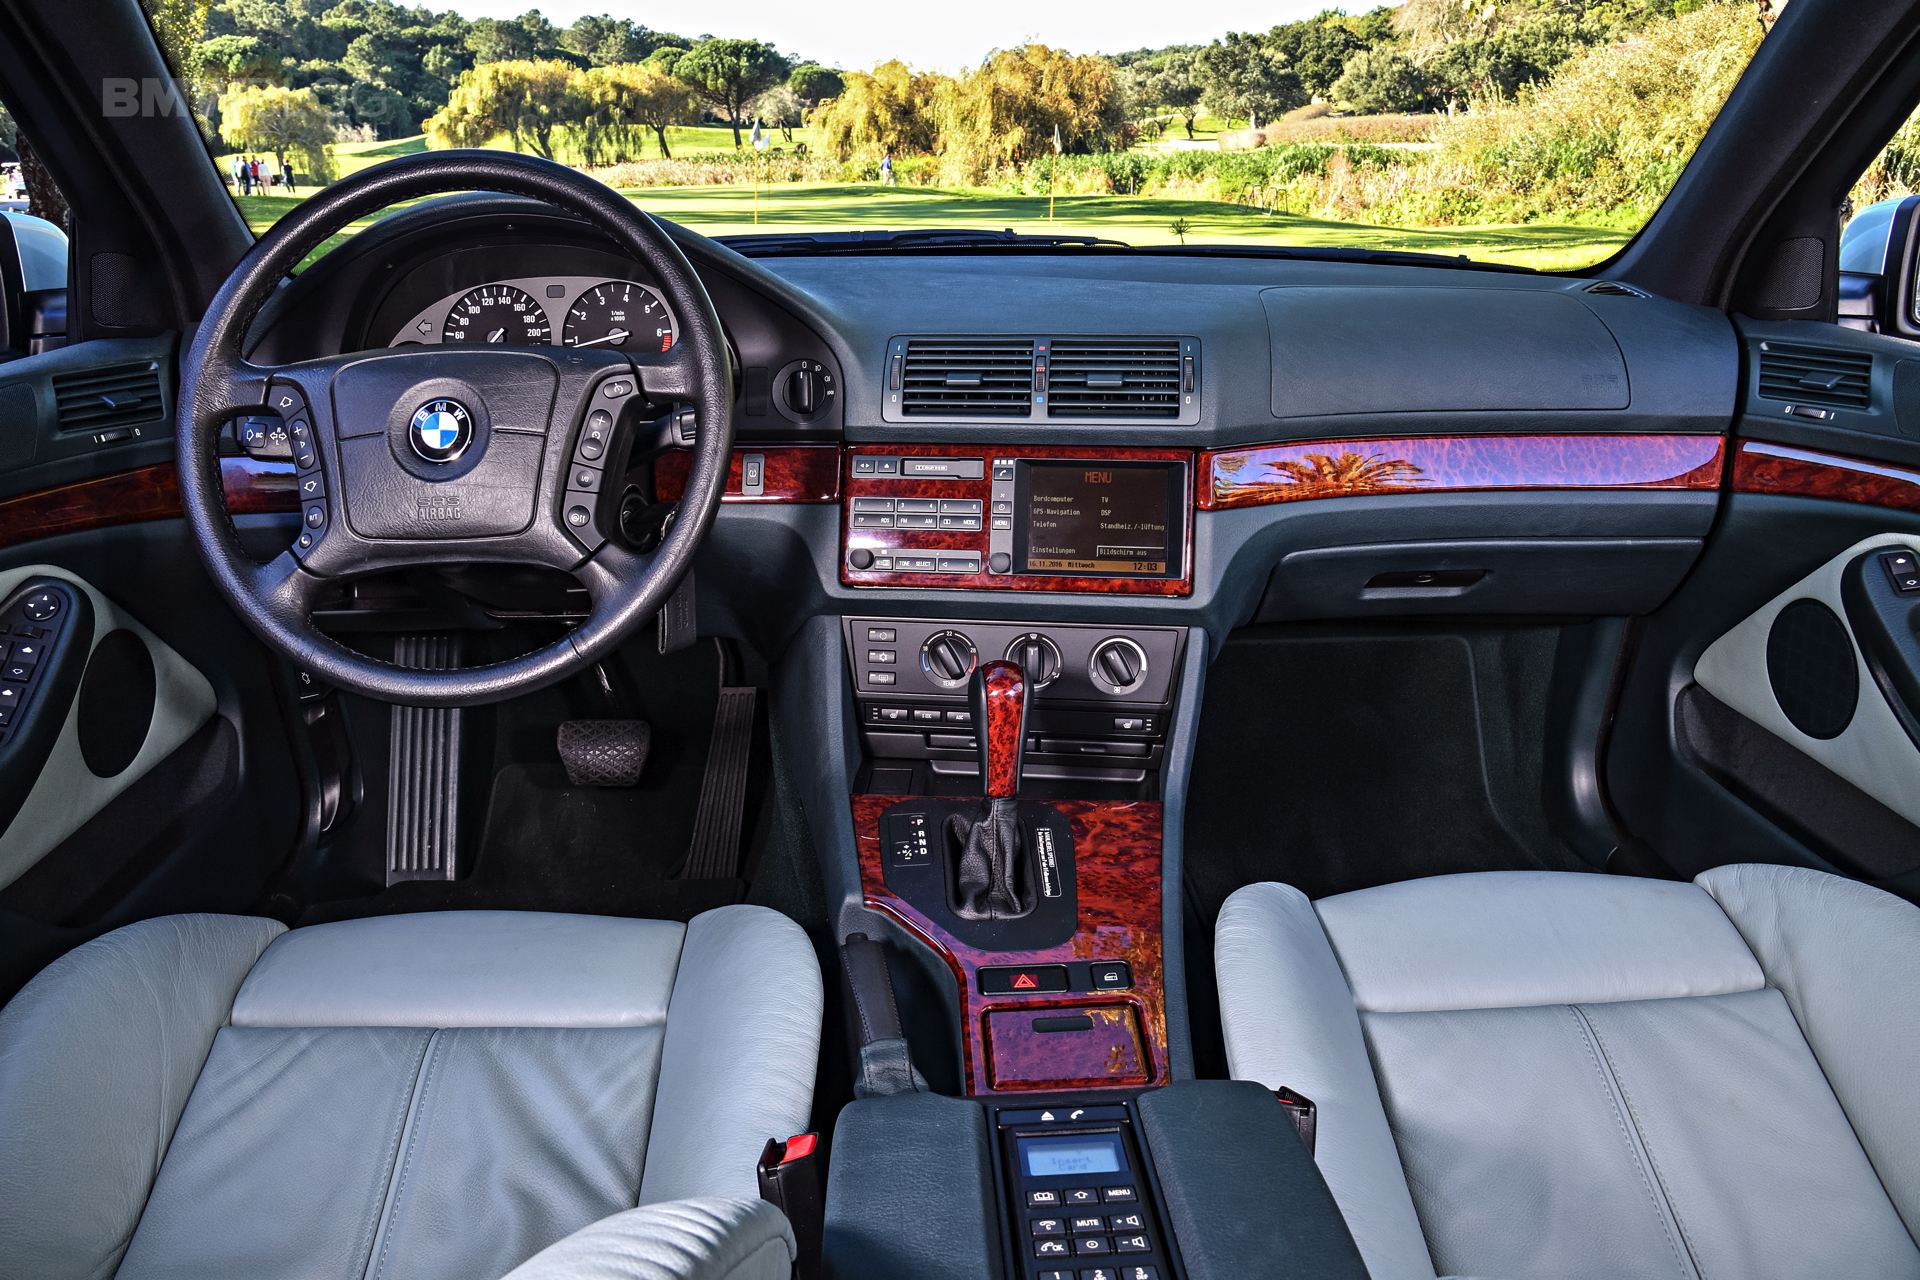 BMW E39 5 Series photos 12